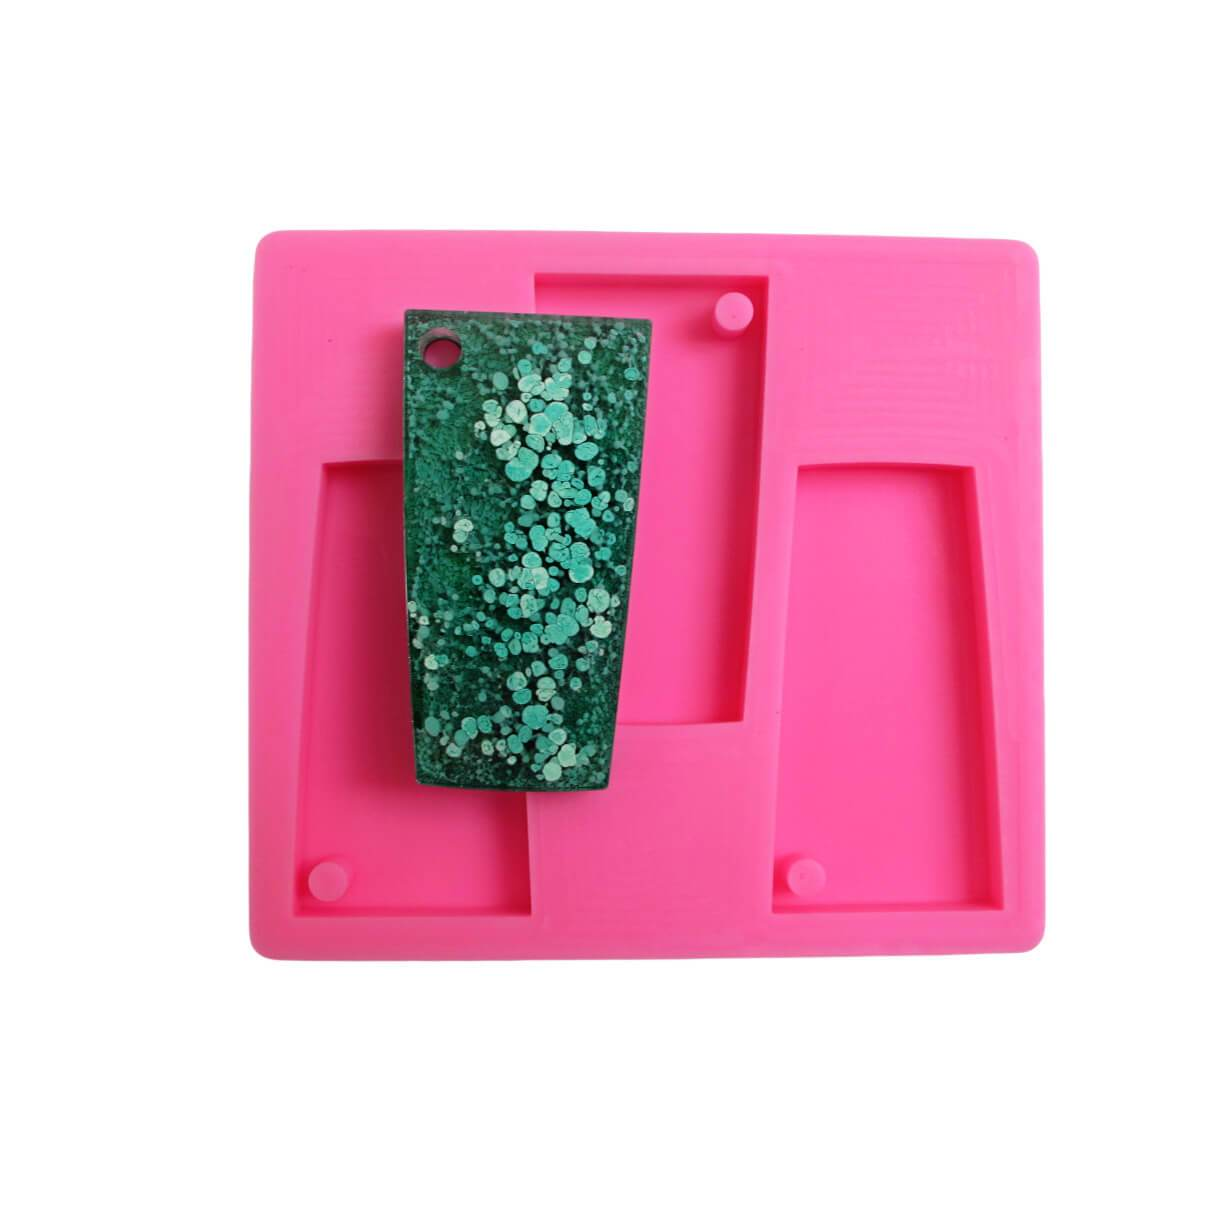 Trapezoid glass shaped silicone key chain mold